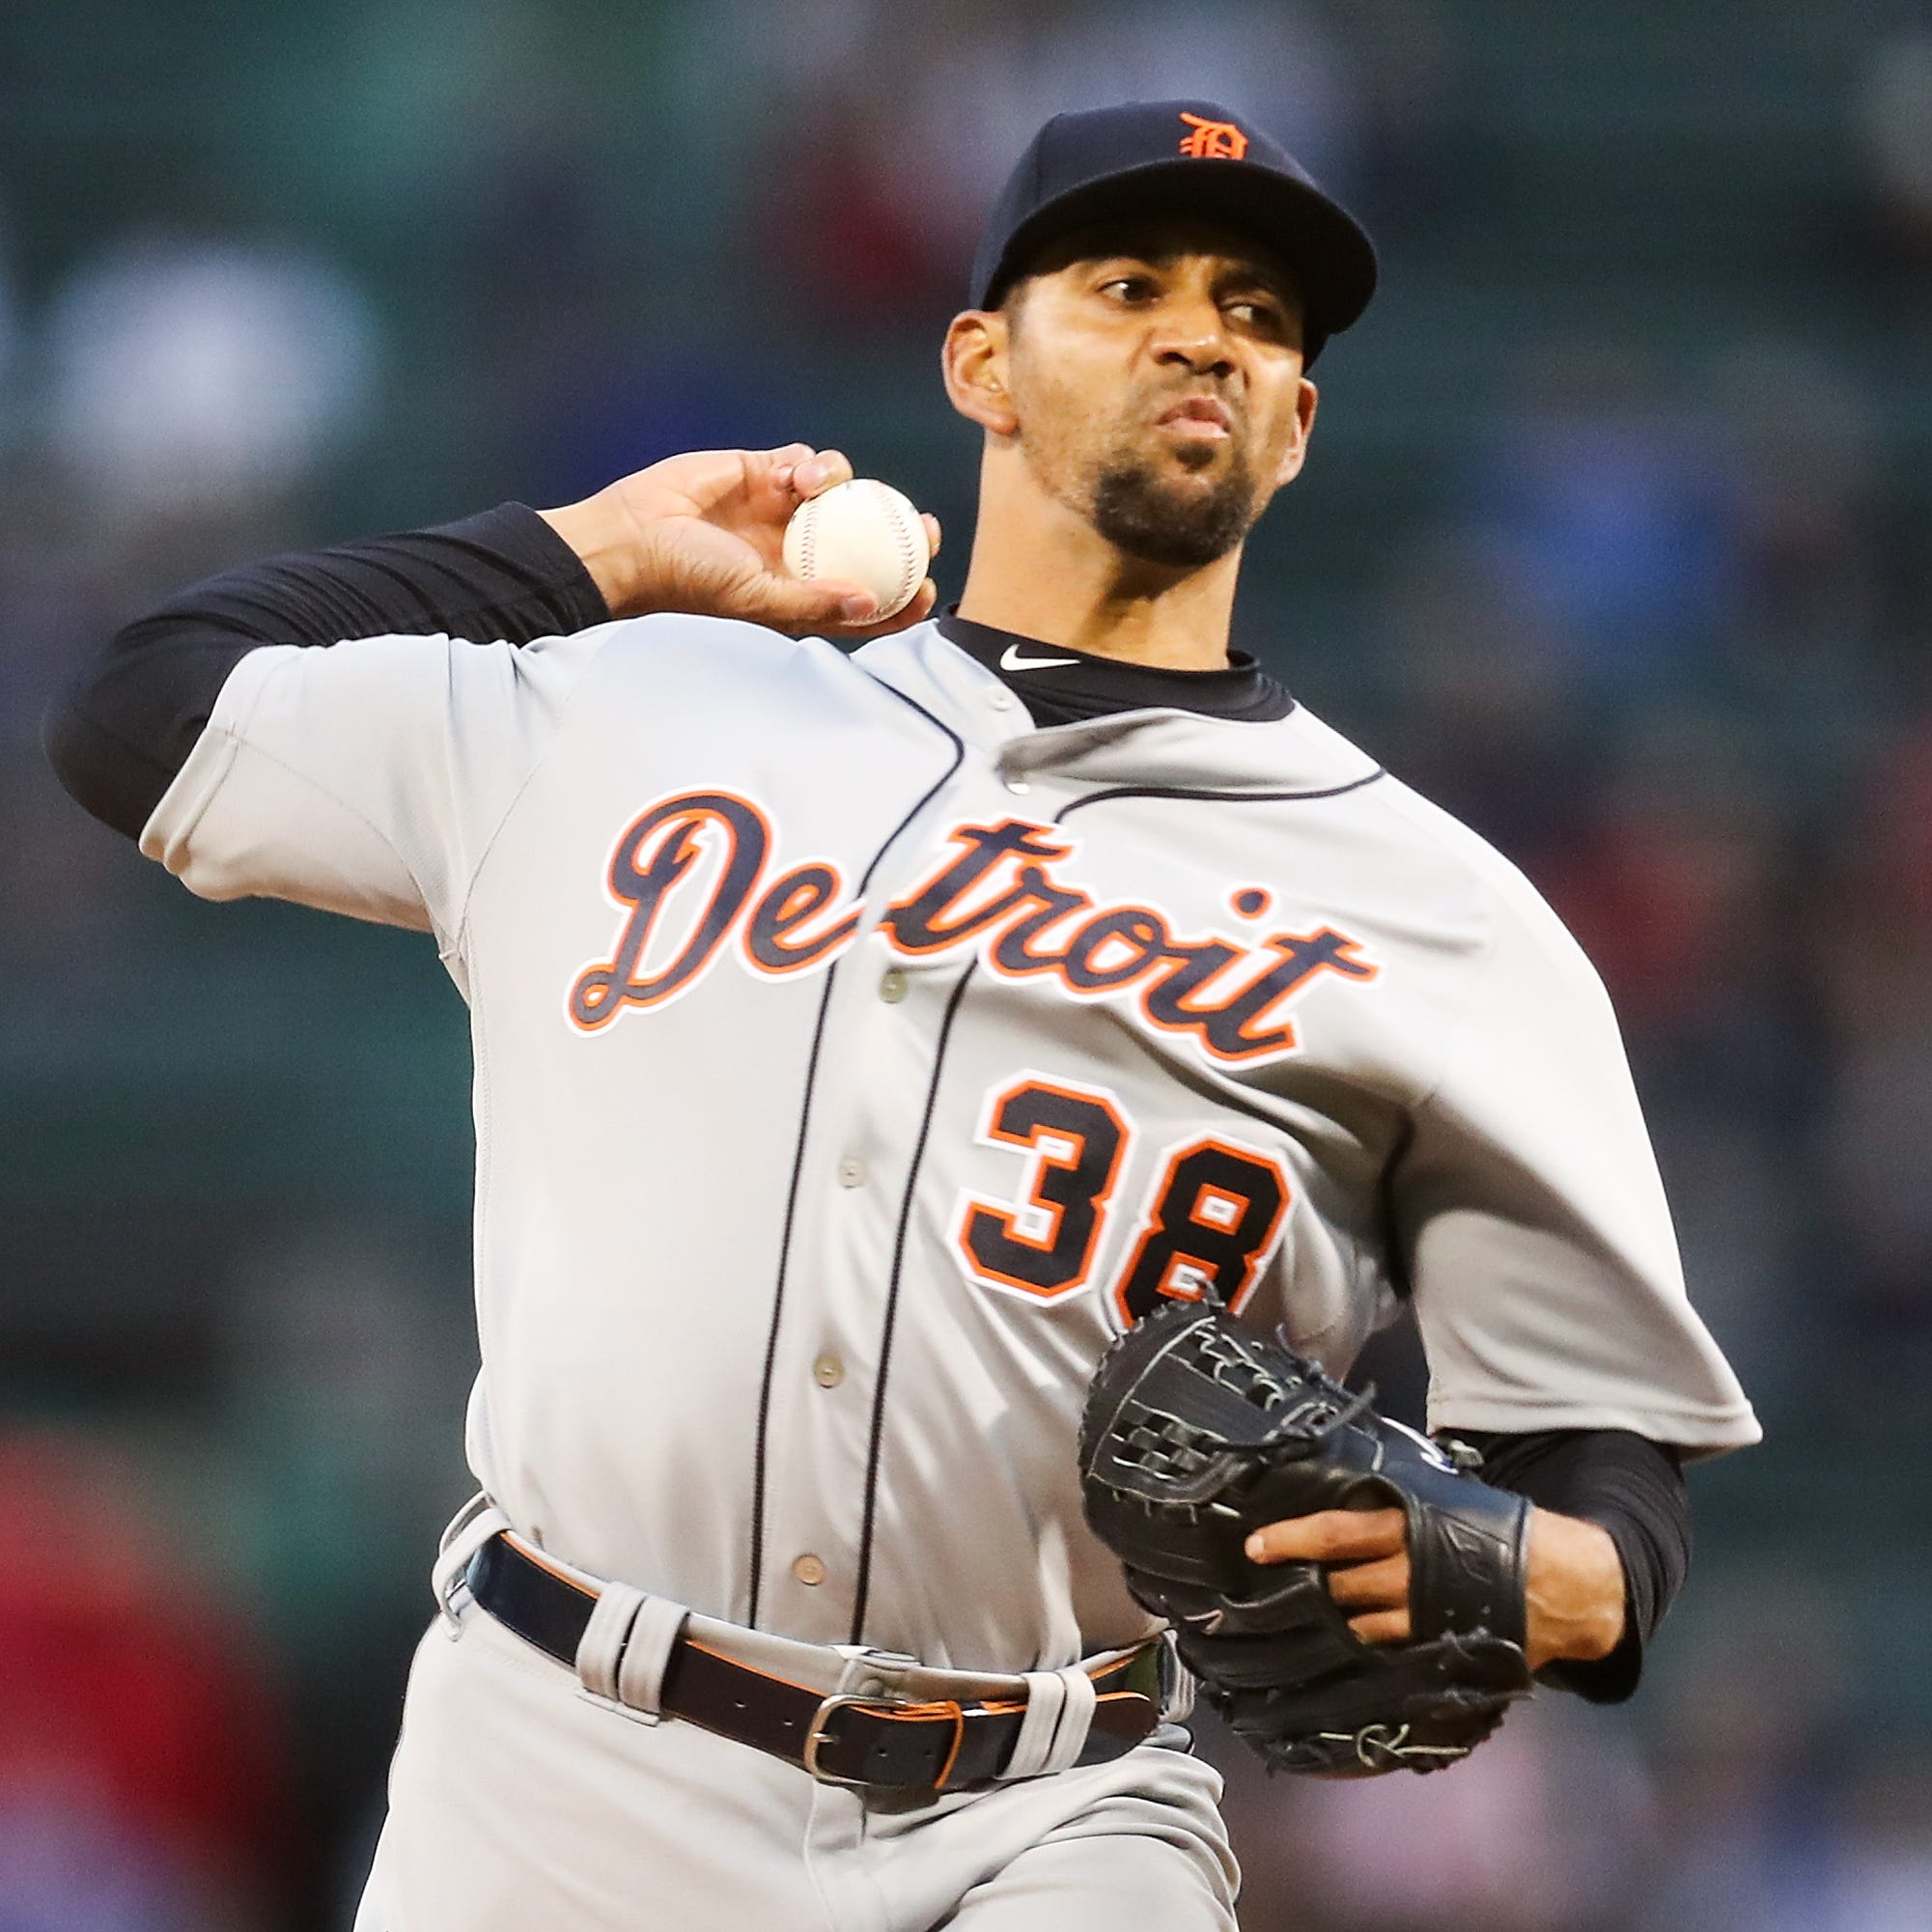 Detroit Tigers' newest father Tyson Ross praises his wife: 'She's a true champ'